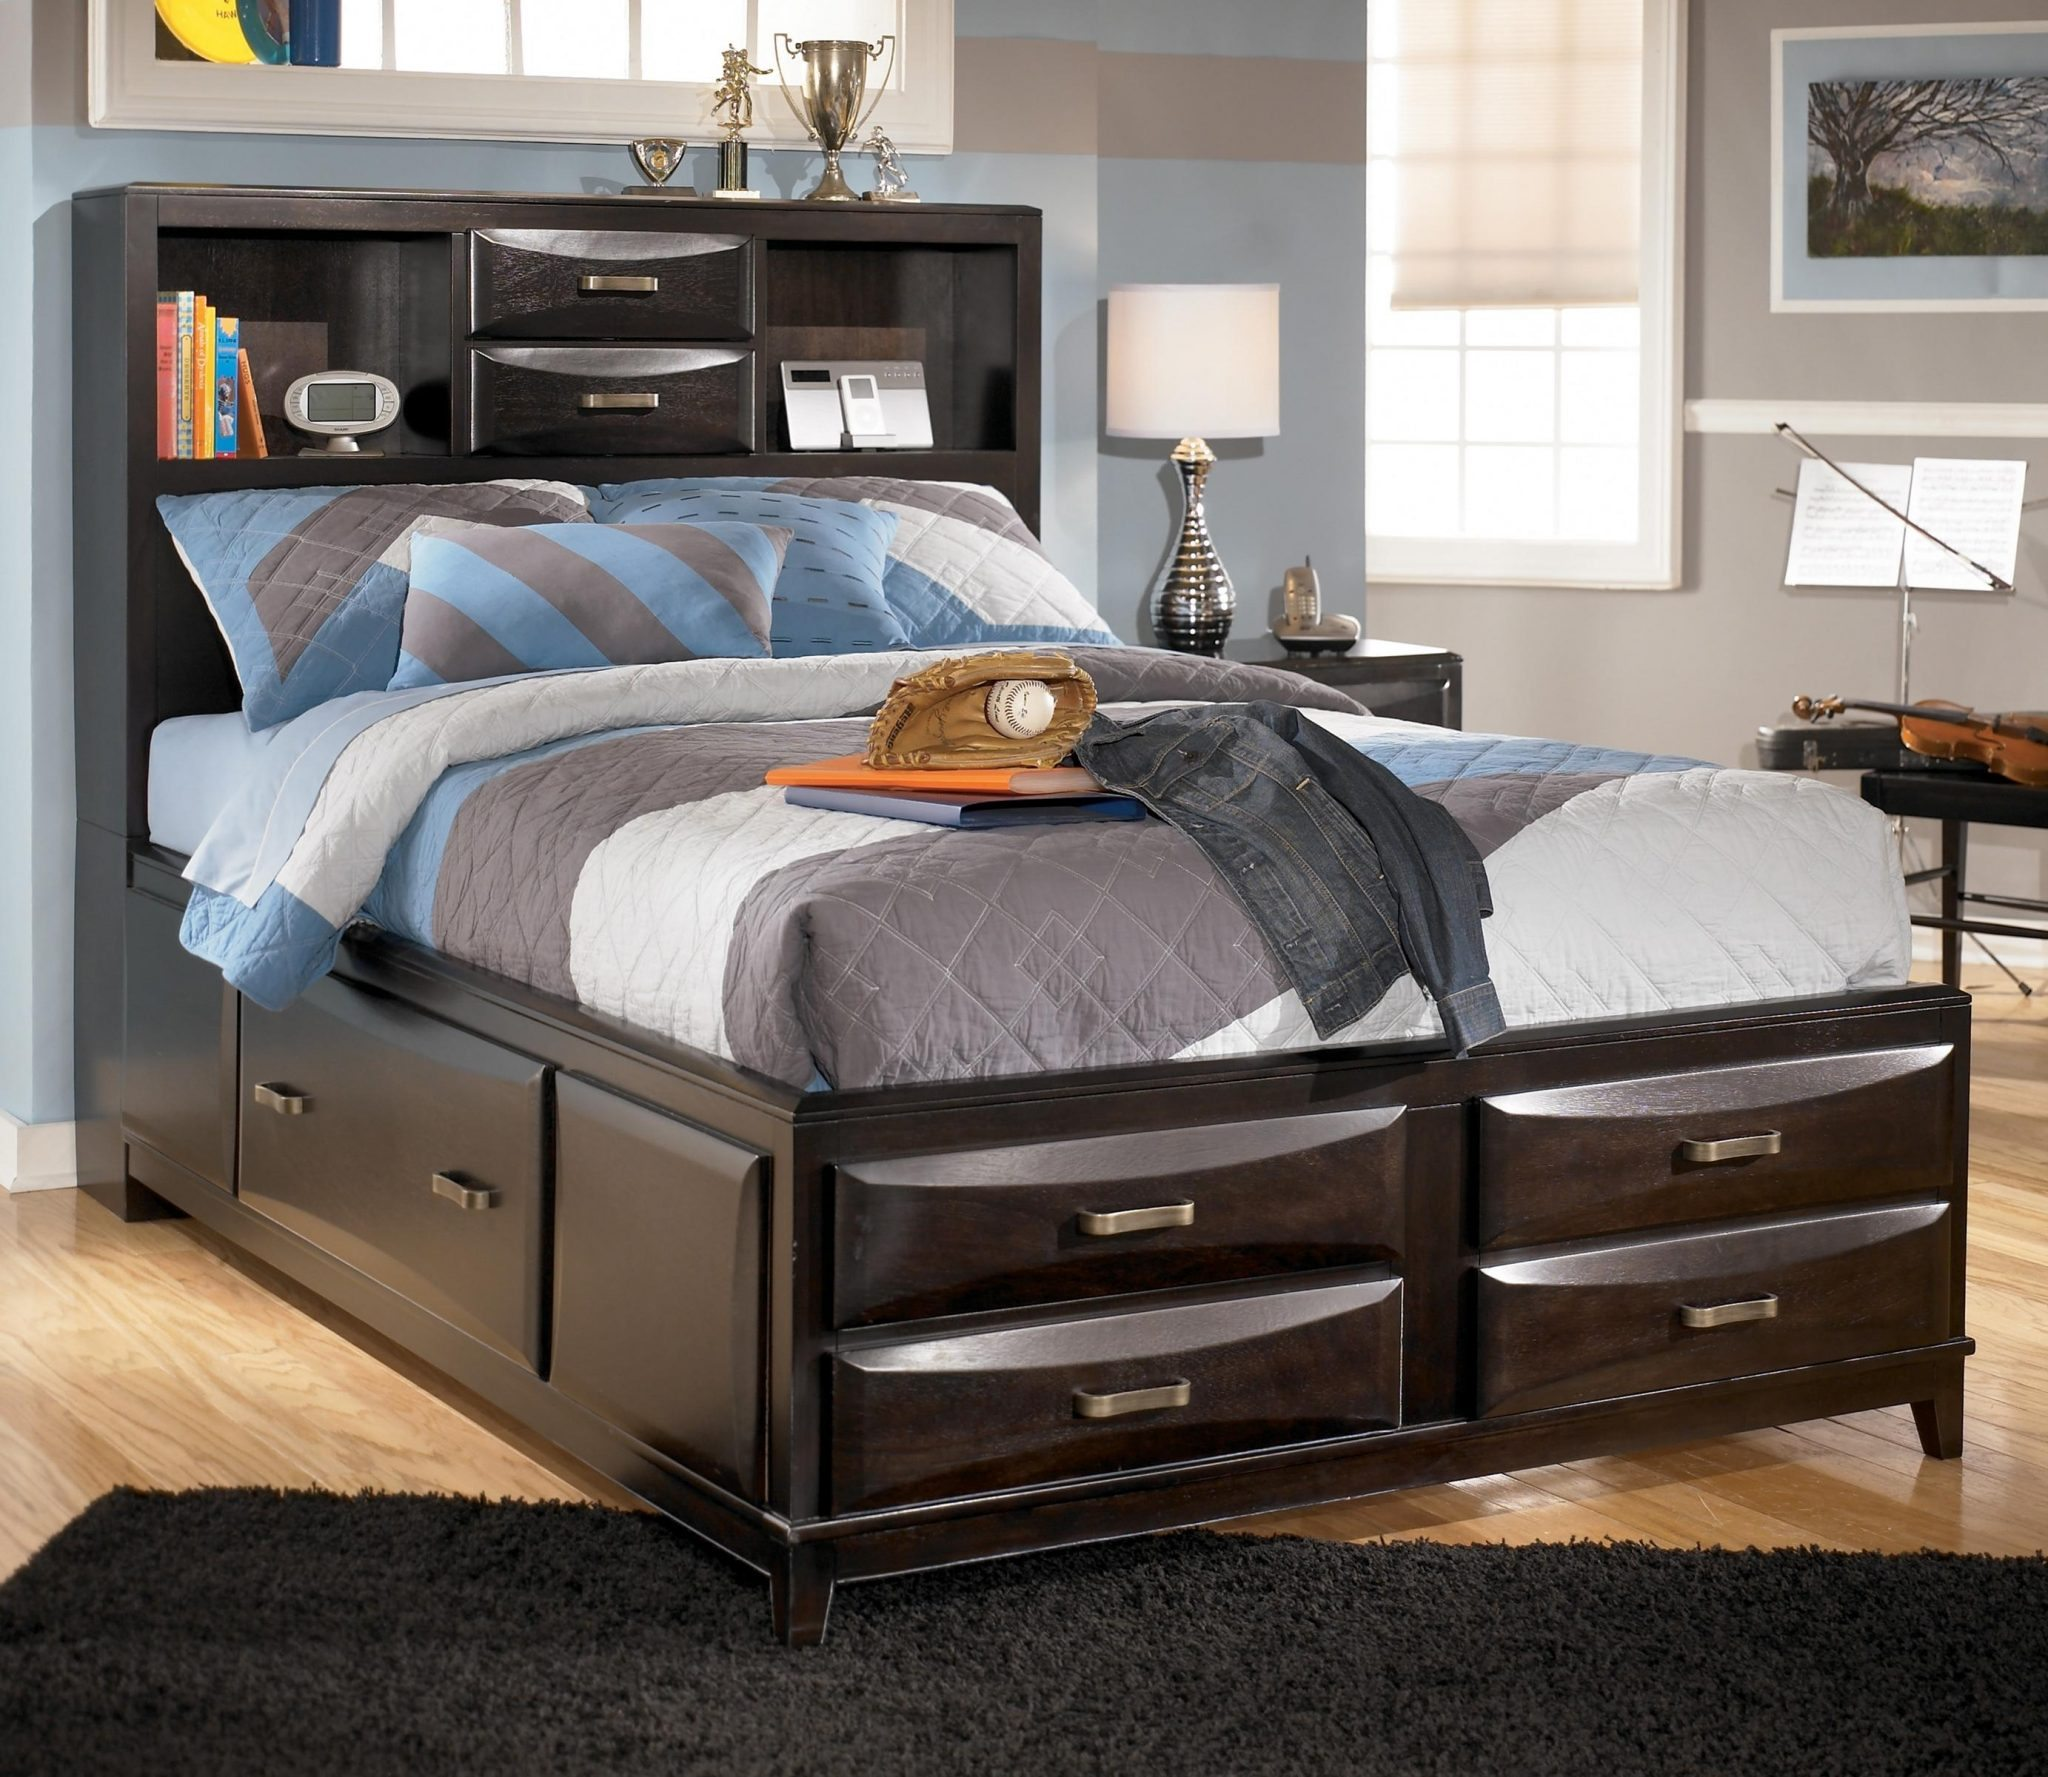 Ashley Furniture Salem Nh | Ashley Furniture Louisville | Ashley Furniture Mn